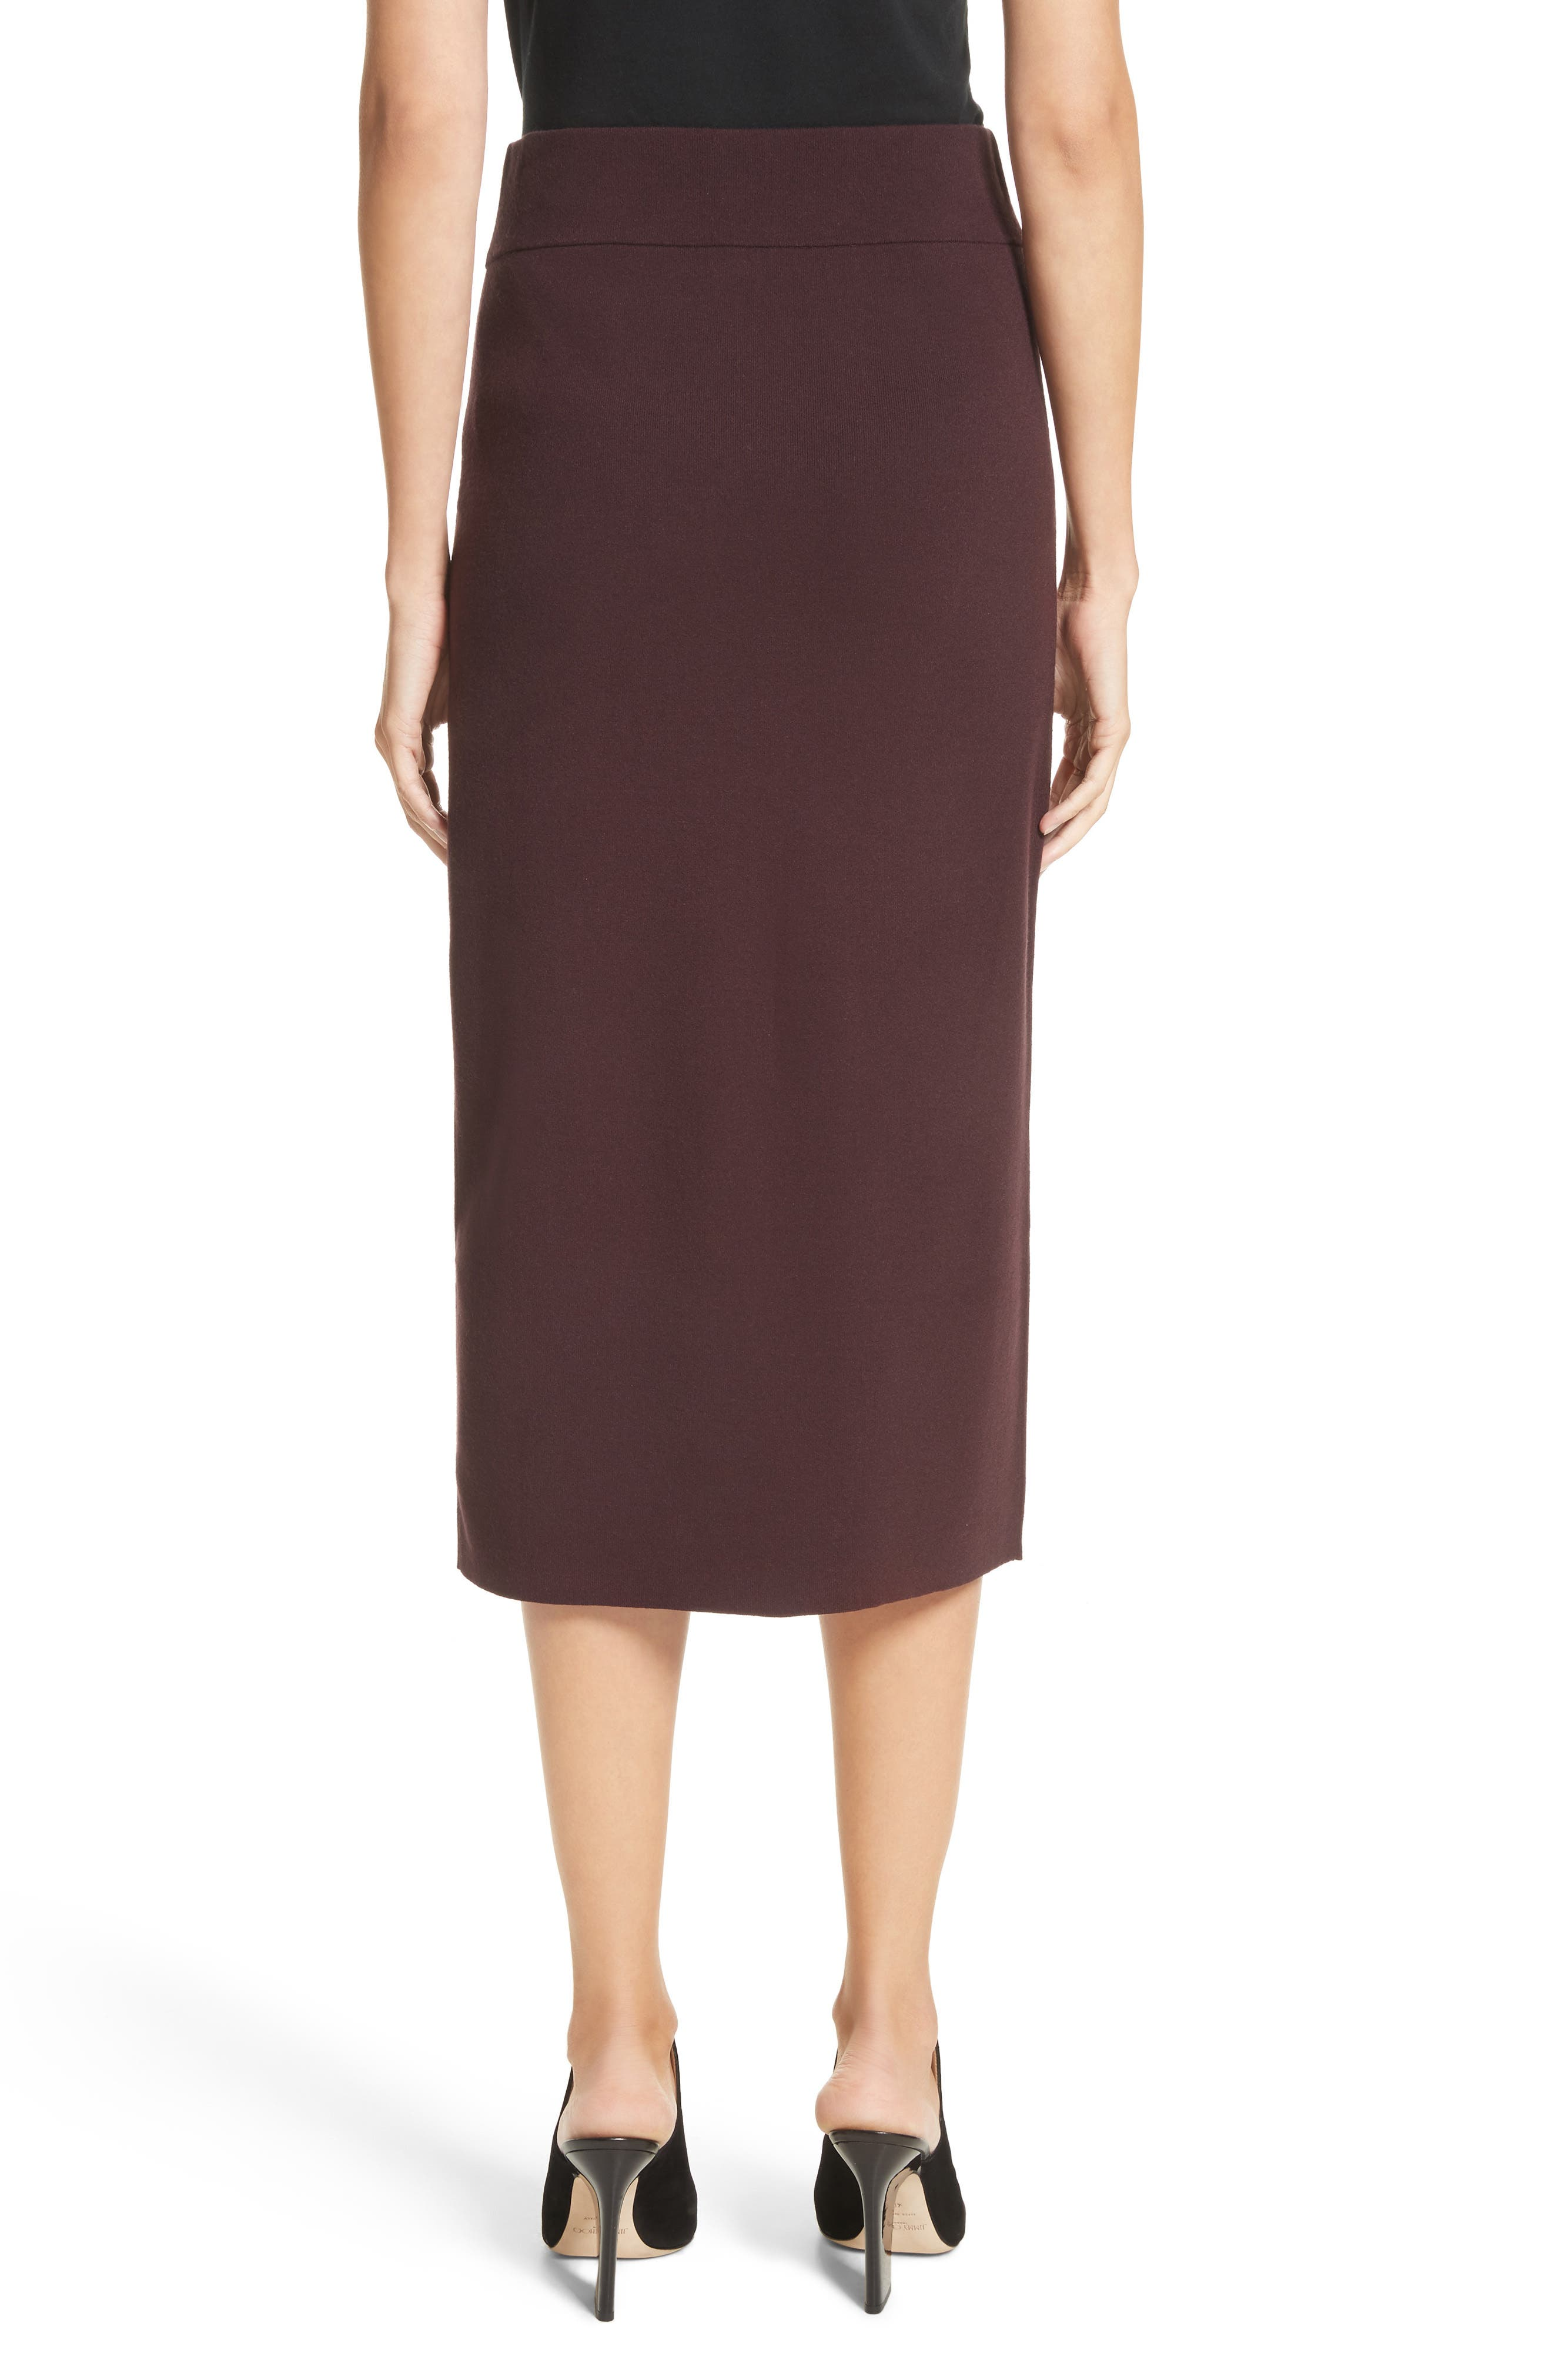 Smith Knit Pencil Skirt,                             Alternate thumbnail 3, color,                             Raisin